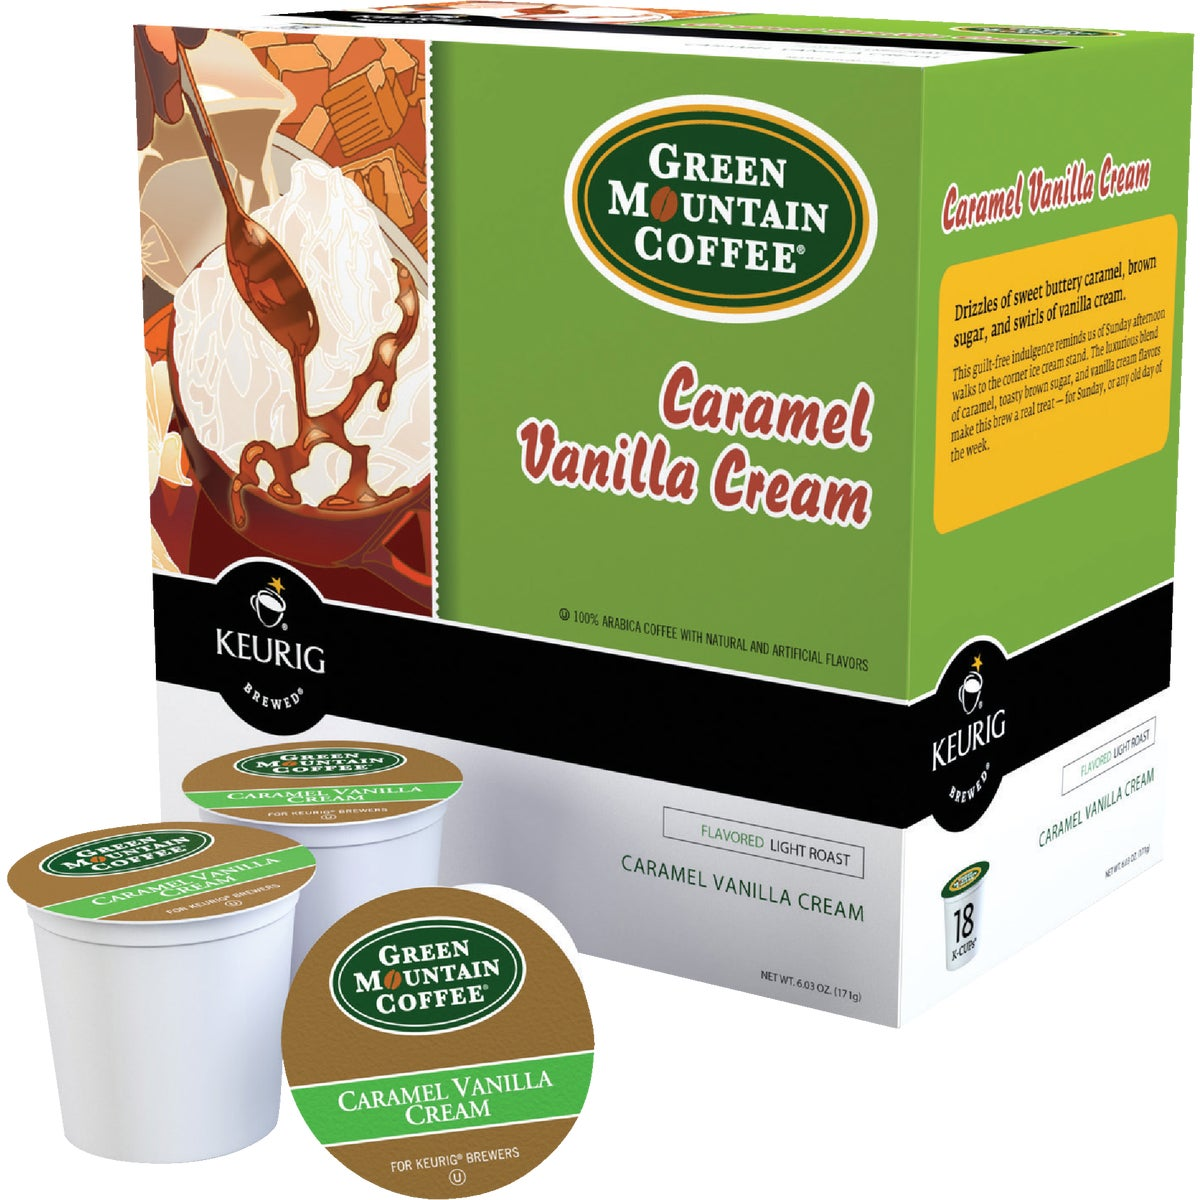 18CT K-CUP C VNLL COFFEE - 00750 by Keurig     M Block